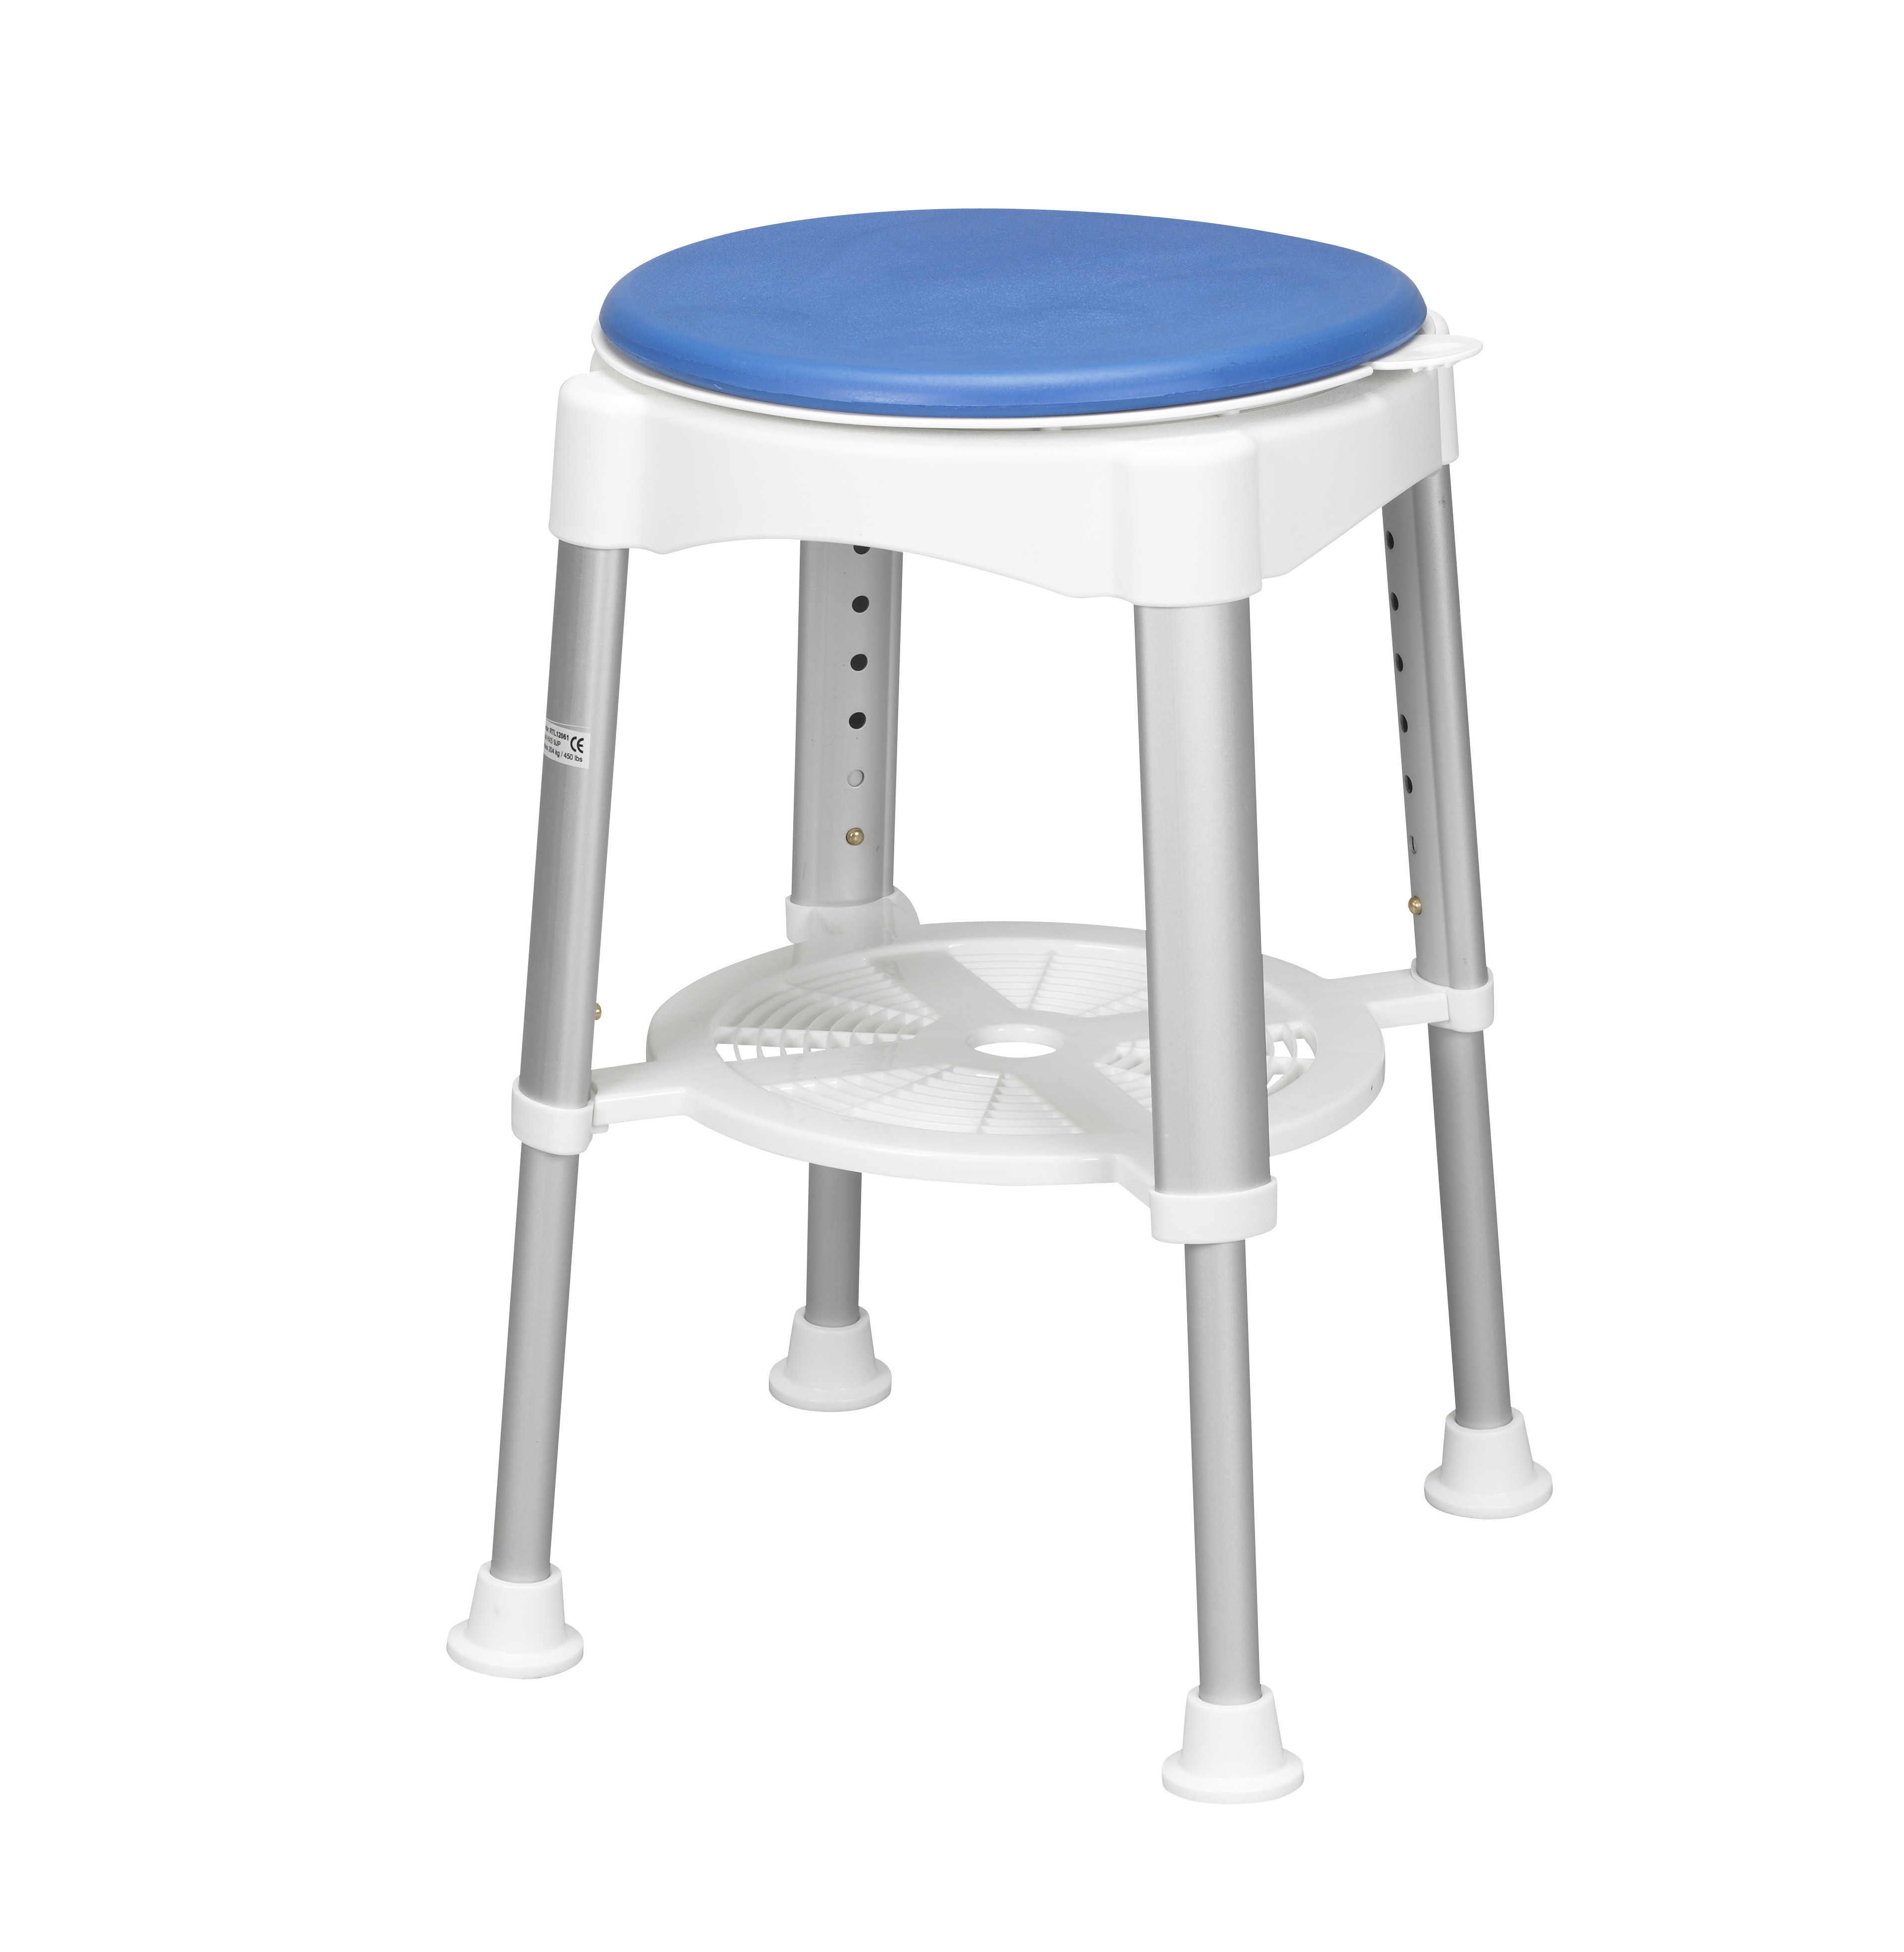 Shower Stool - Northeast Mobility